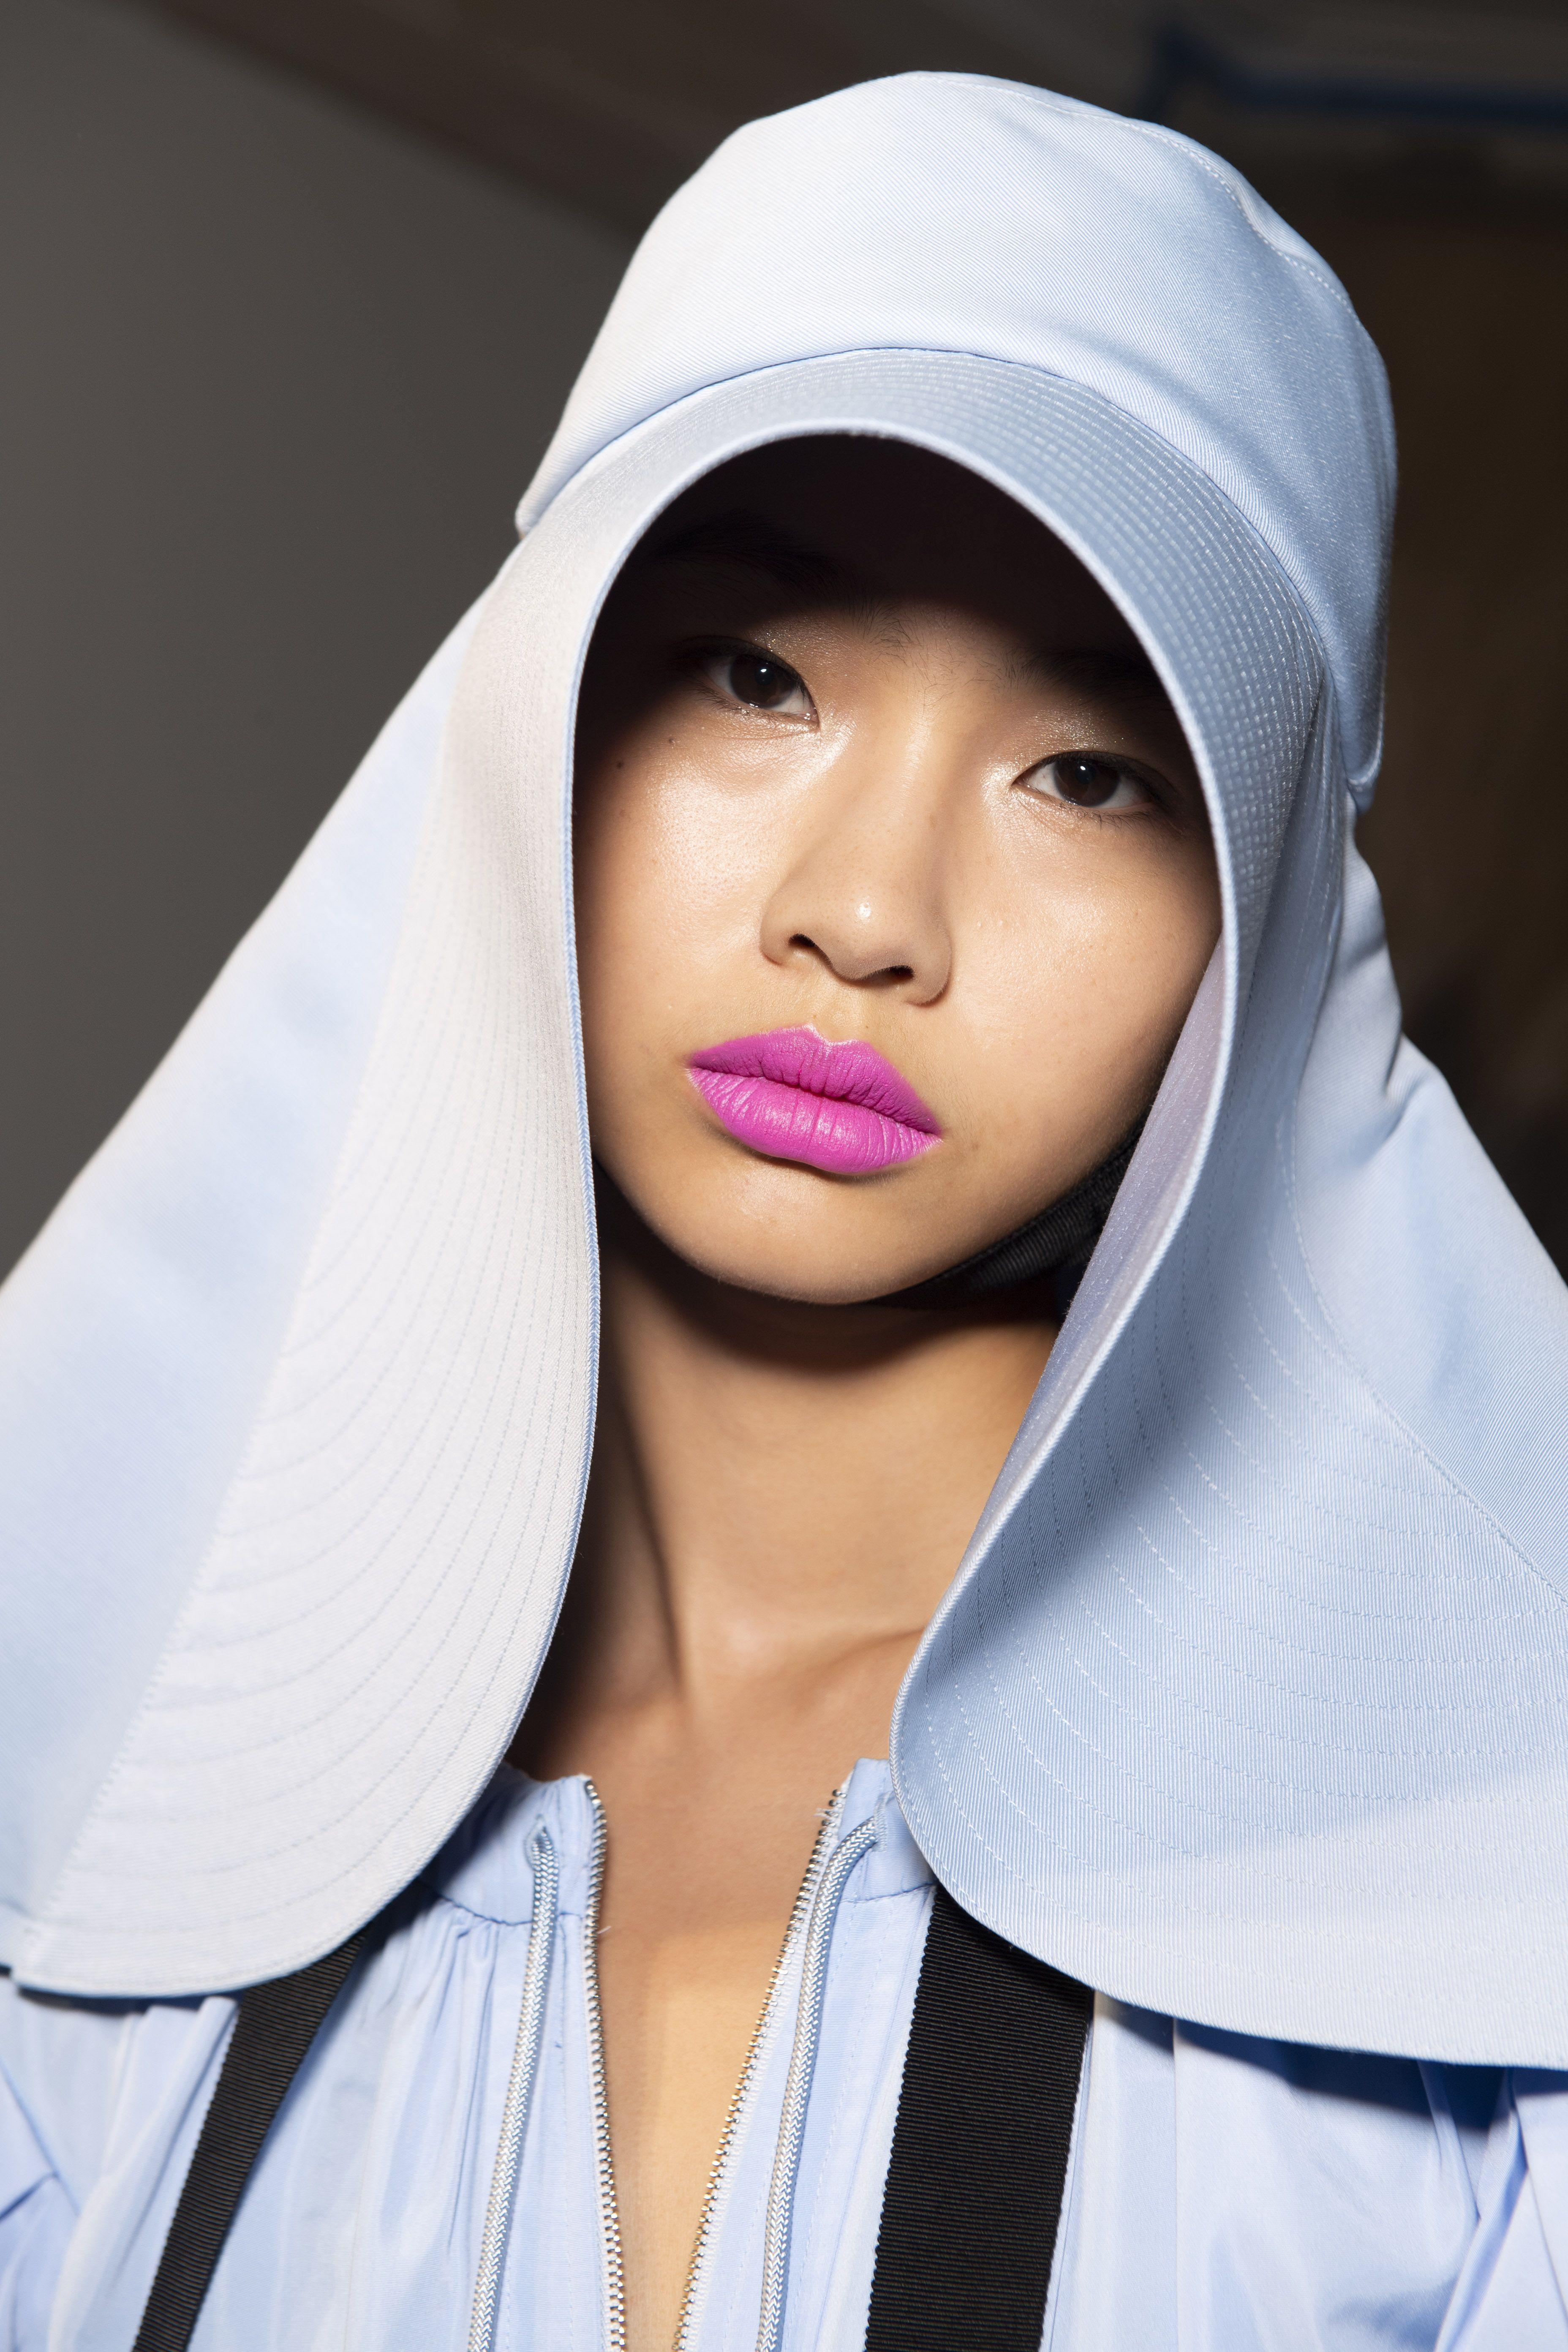 Pastel Makeup Trend - How To Wear